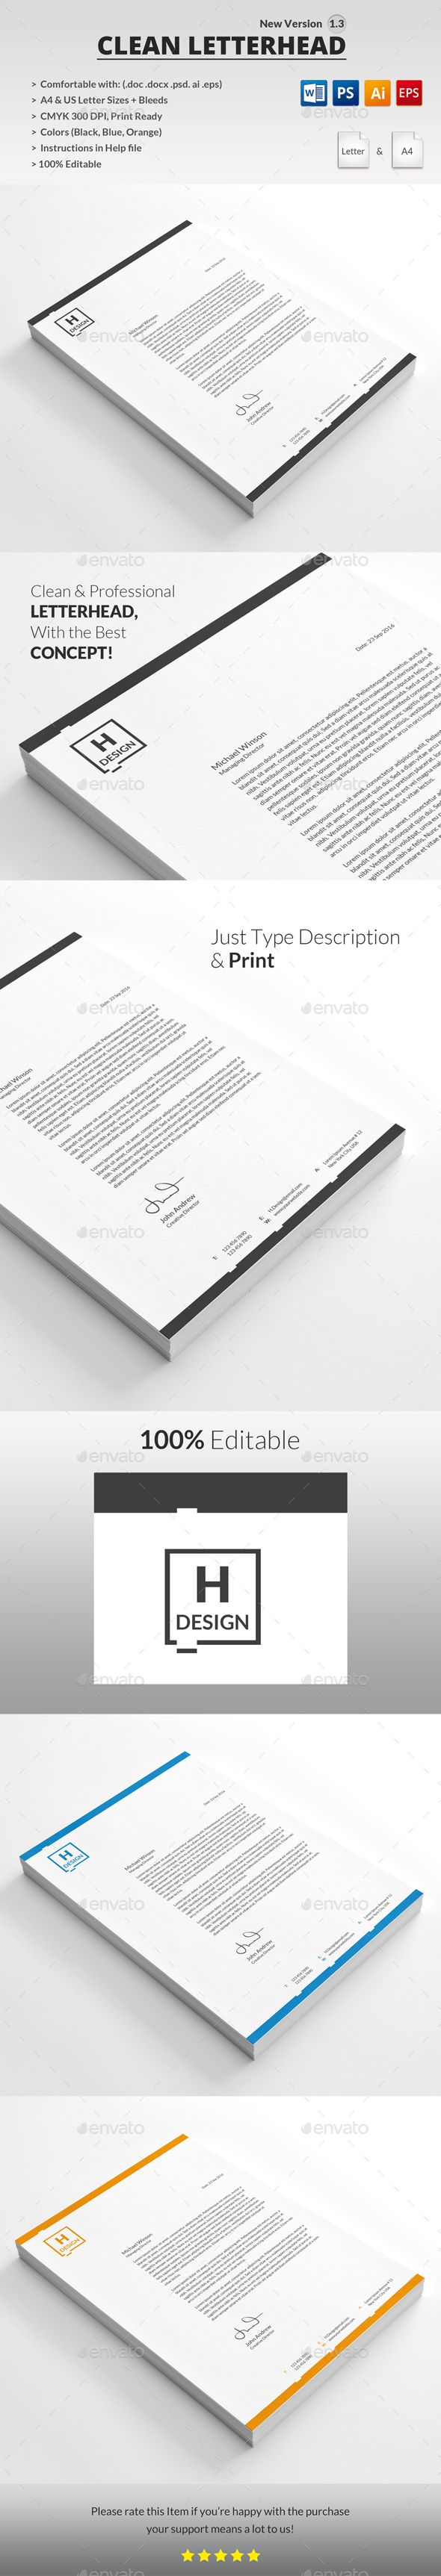 The 80 best letterheads print template images on pinterest 78985d30ef27c4d9f1b5d778f85ef921 psd templates print templatesg altavistaventures Image collections